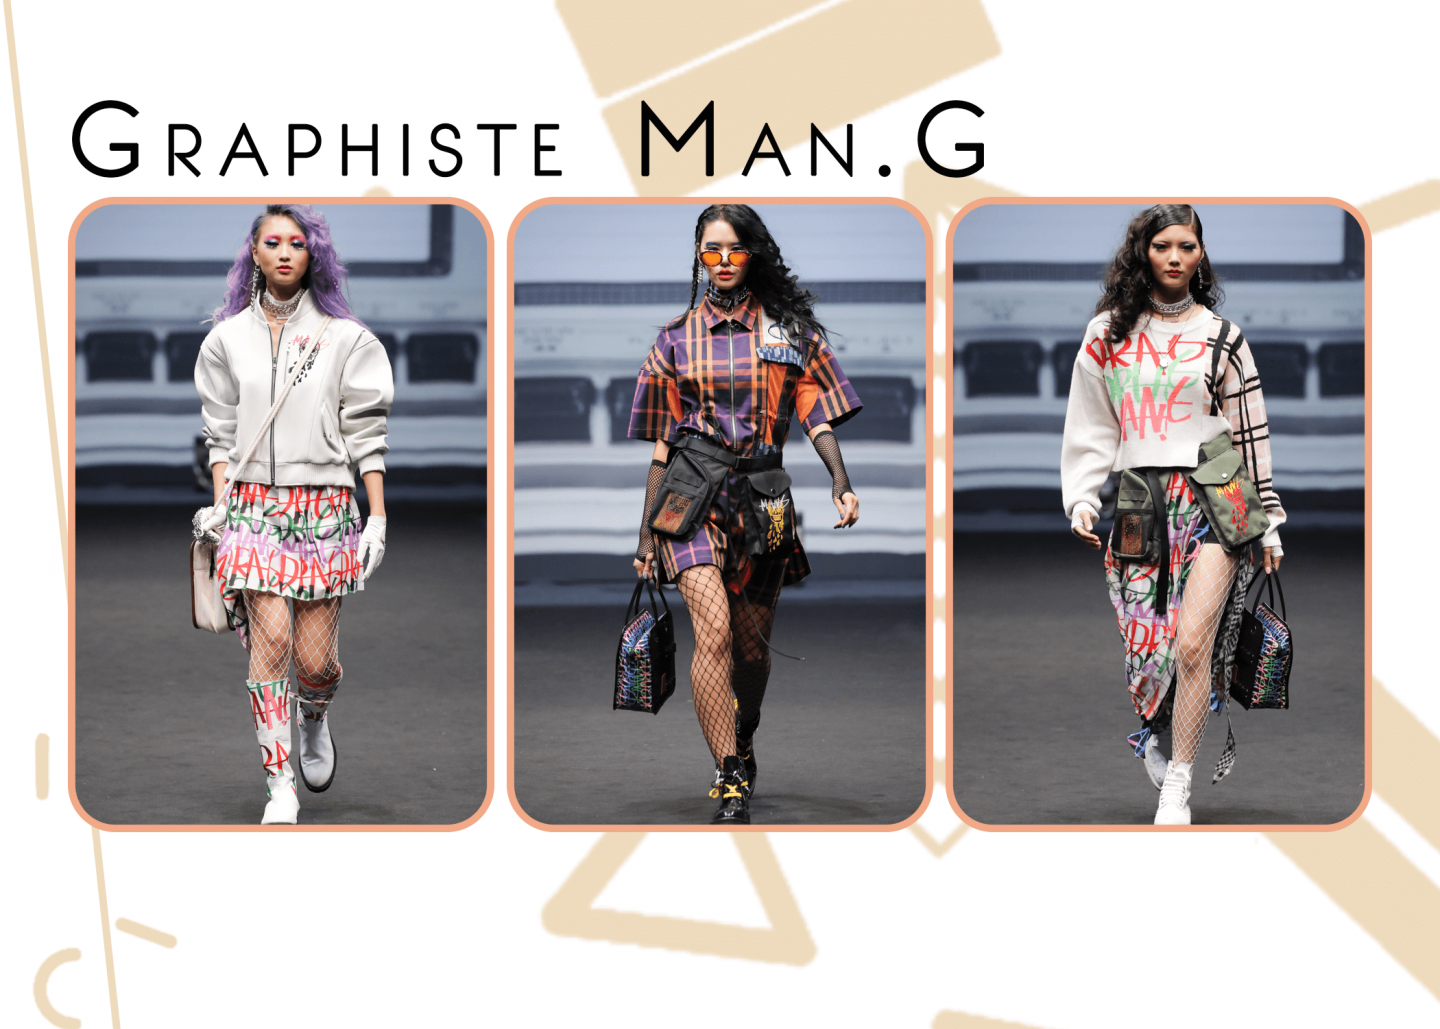 Fii's favourite outfits from GRAPHISTE MAN.G collection